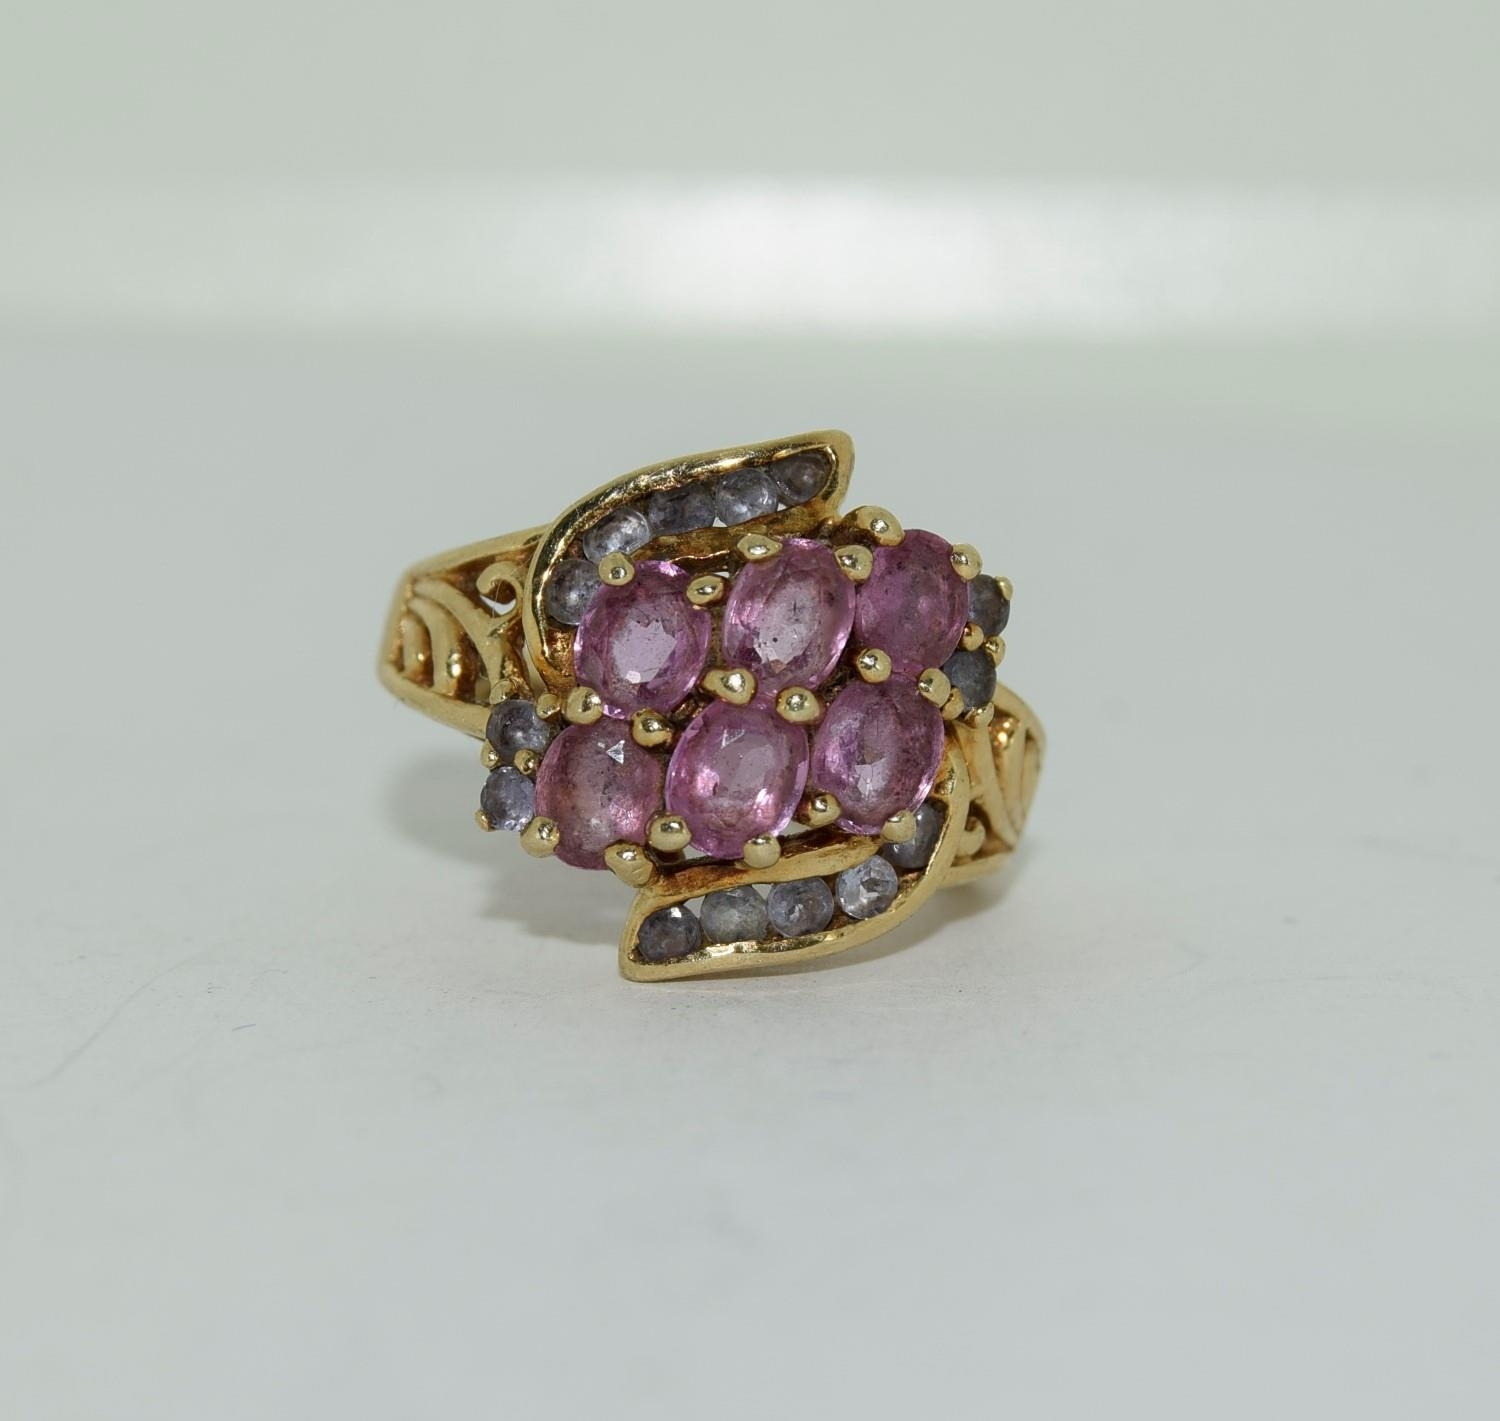 9ct gold ladies pink tourmaline and sapphire twist ring size L 4.9gm